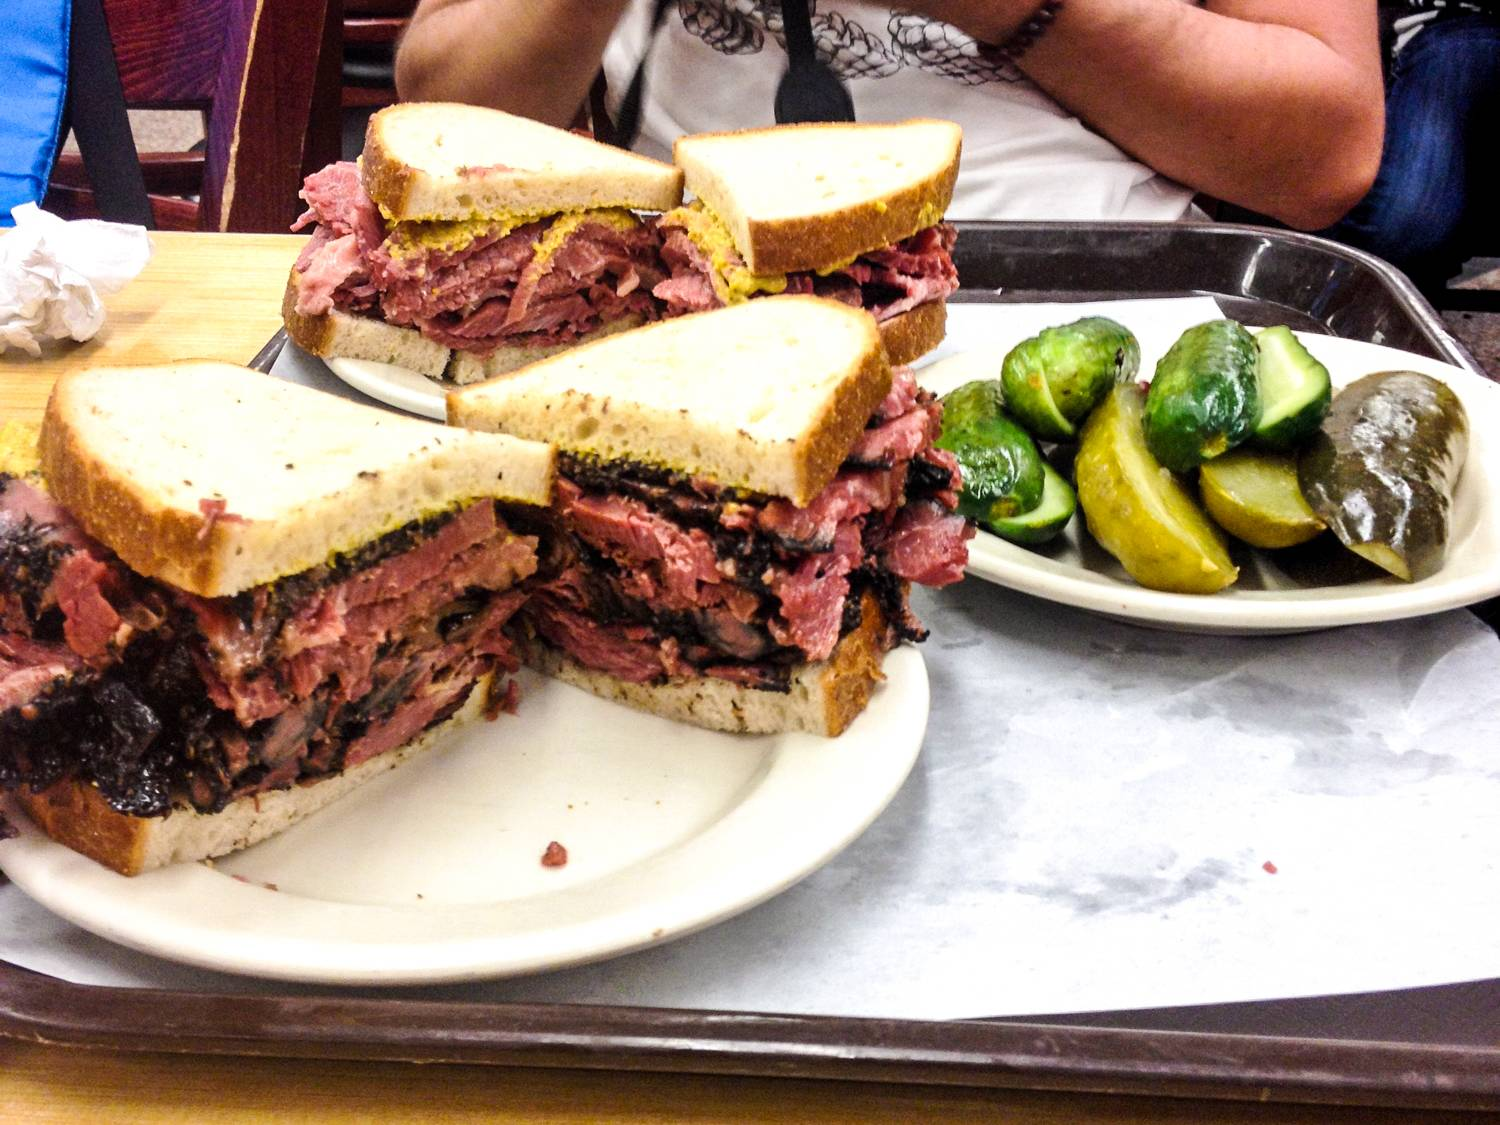 Delicious sandwiches from Kat'z Delicatessen - New York City, USA